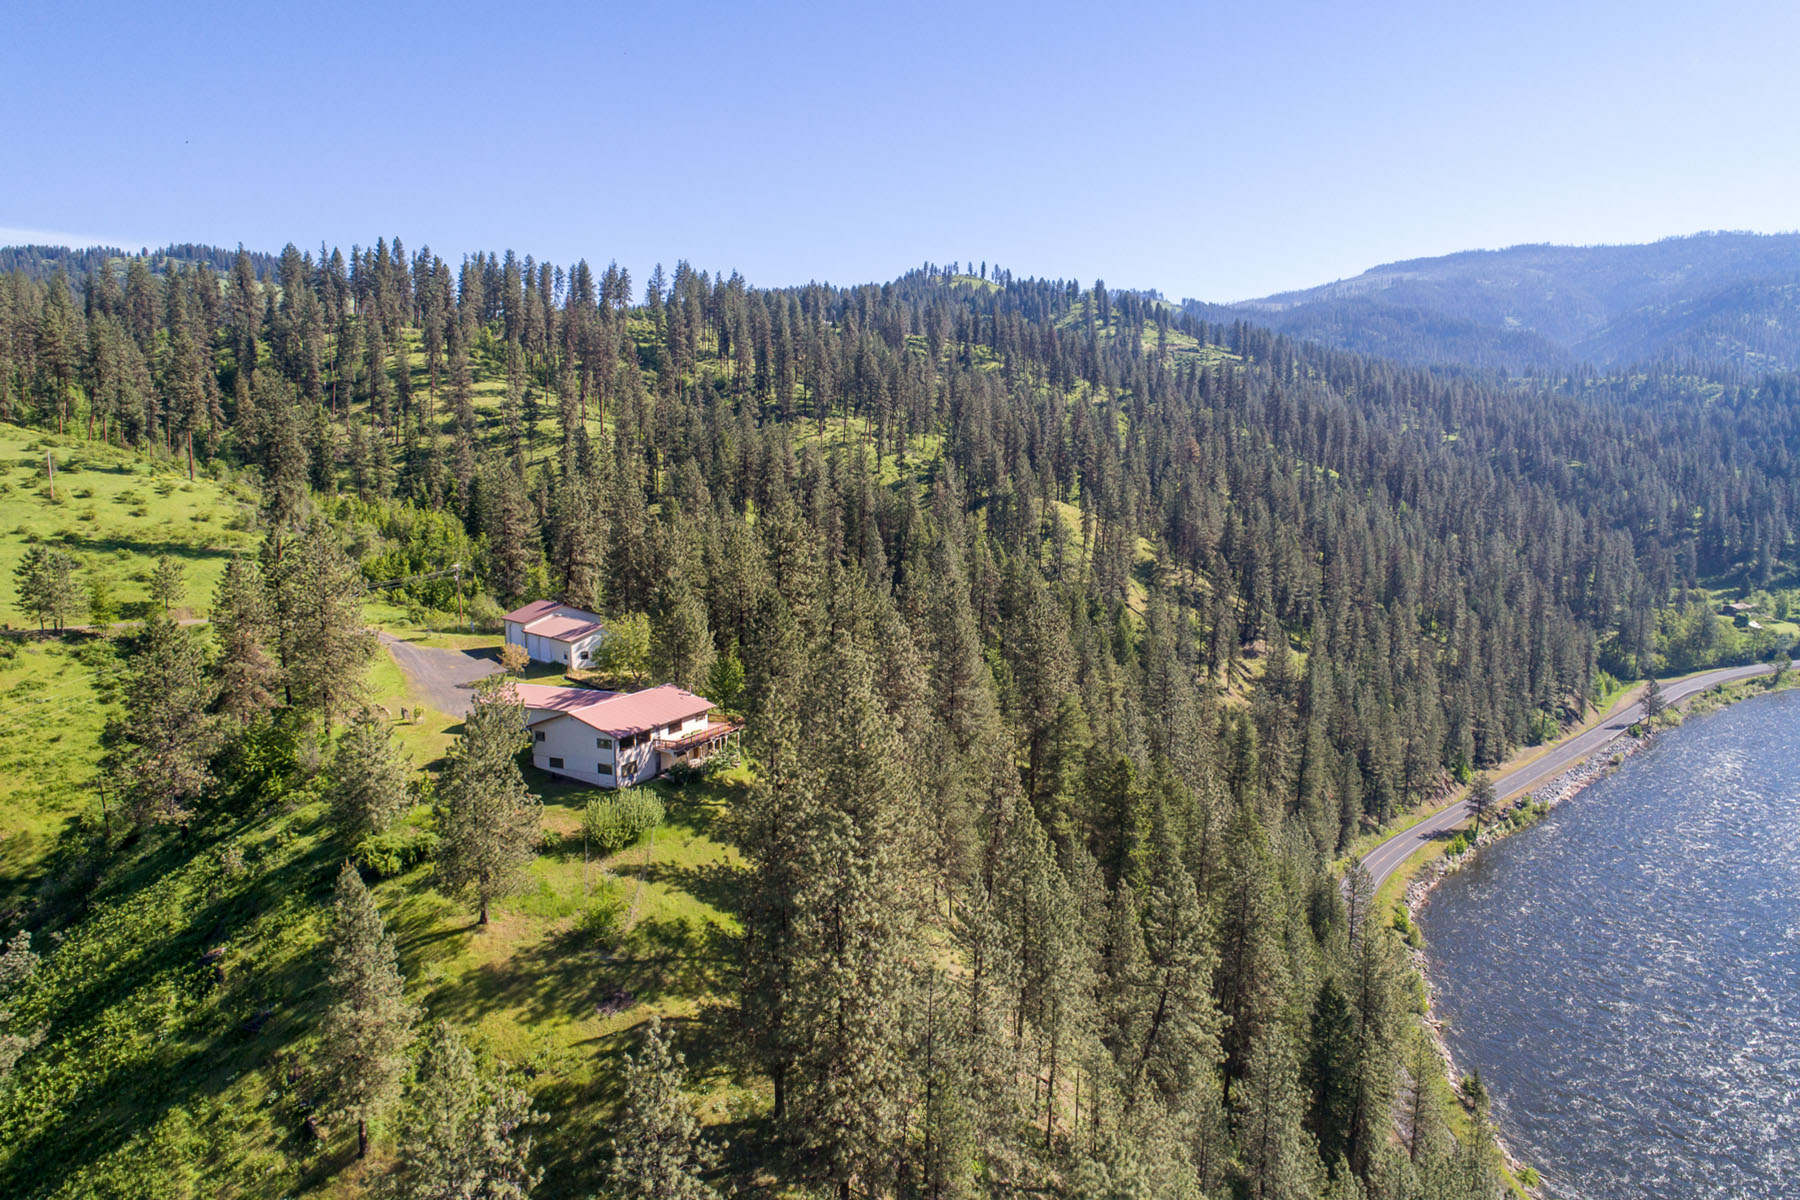 Single Family Home for Sale at Suttler Creek with Sportsman Access 172 Suttler Creek Road Kooskia, Idaho 83539 United States